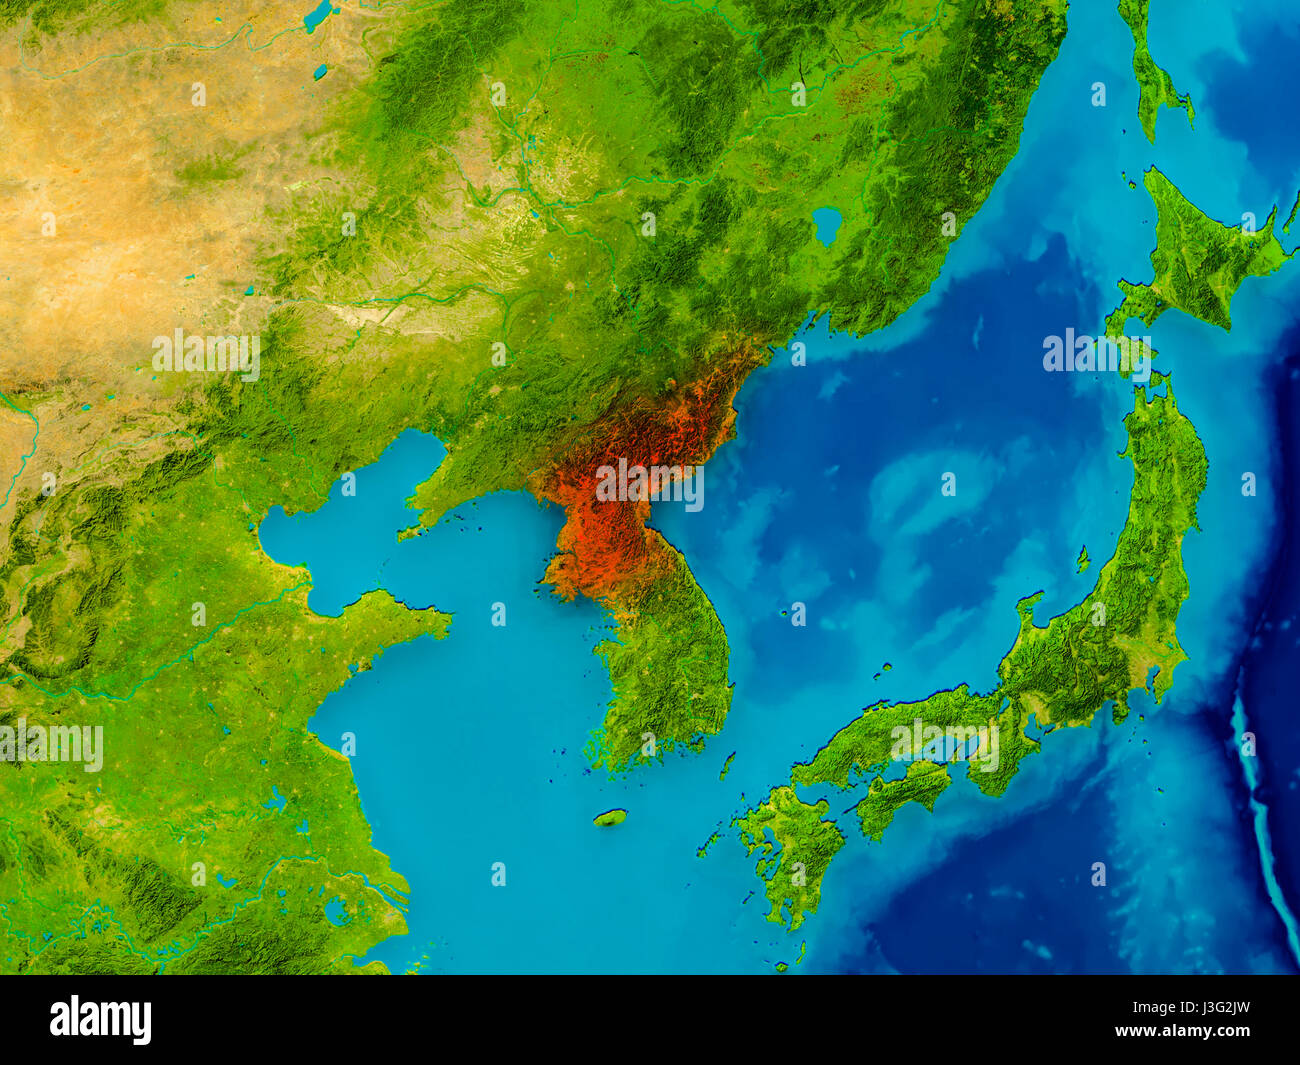 North Korea Highlighted In Red On Physical Map. 3D Illustration. Elements  Of This Image Furnished By NASA.